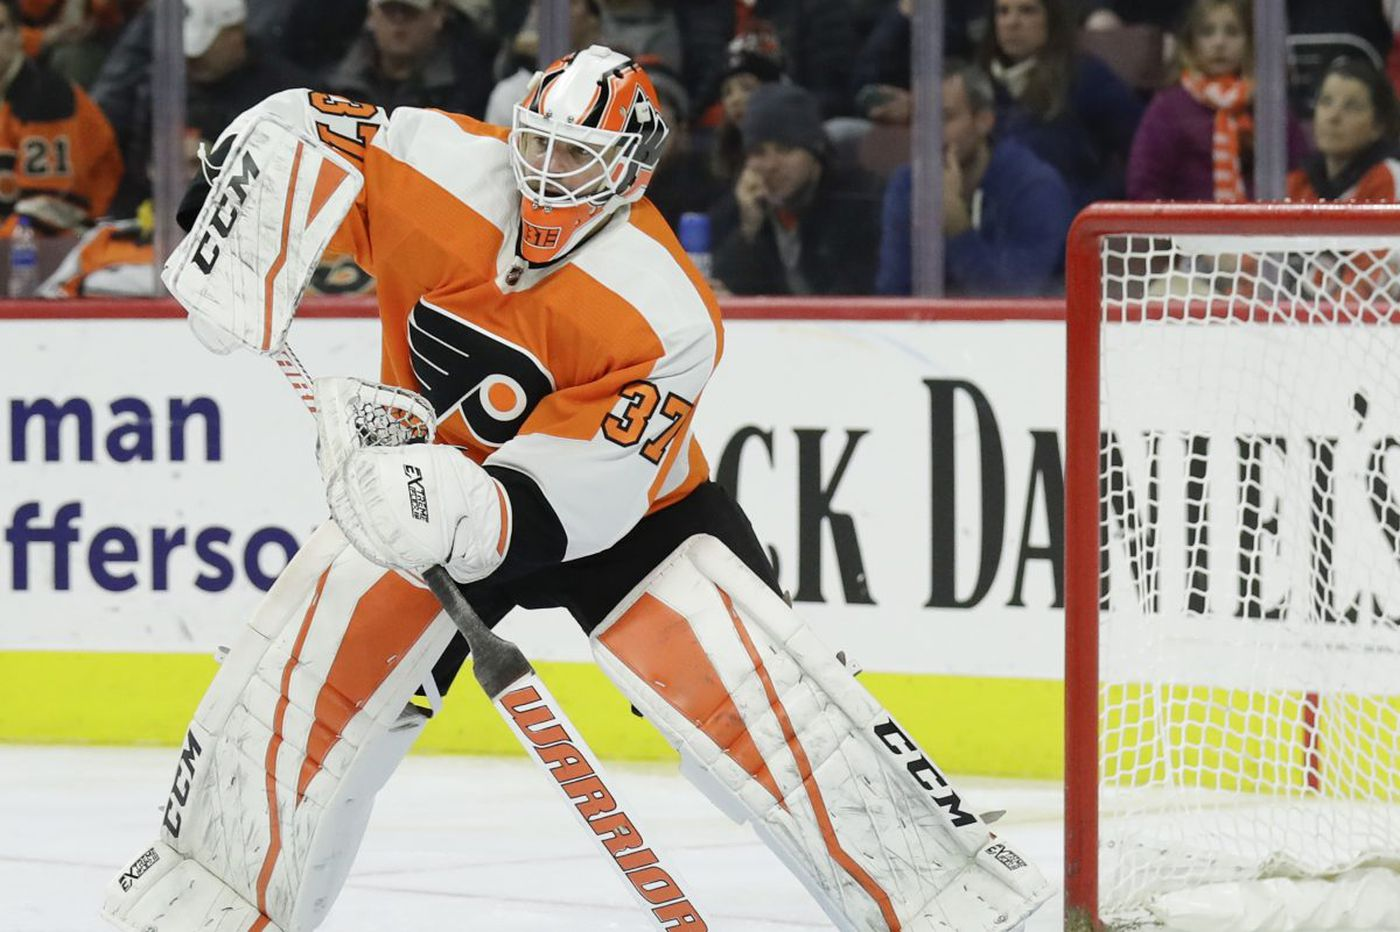 Flyers want to 'emulate' Eagles; Brian Elliott returning to lineup